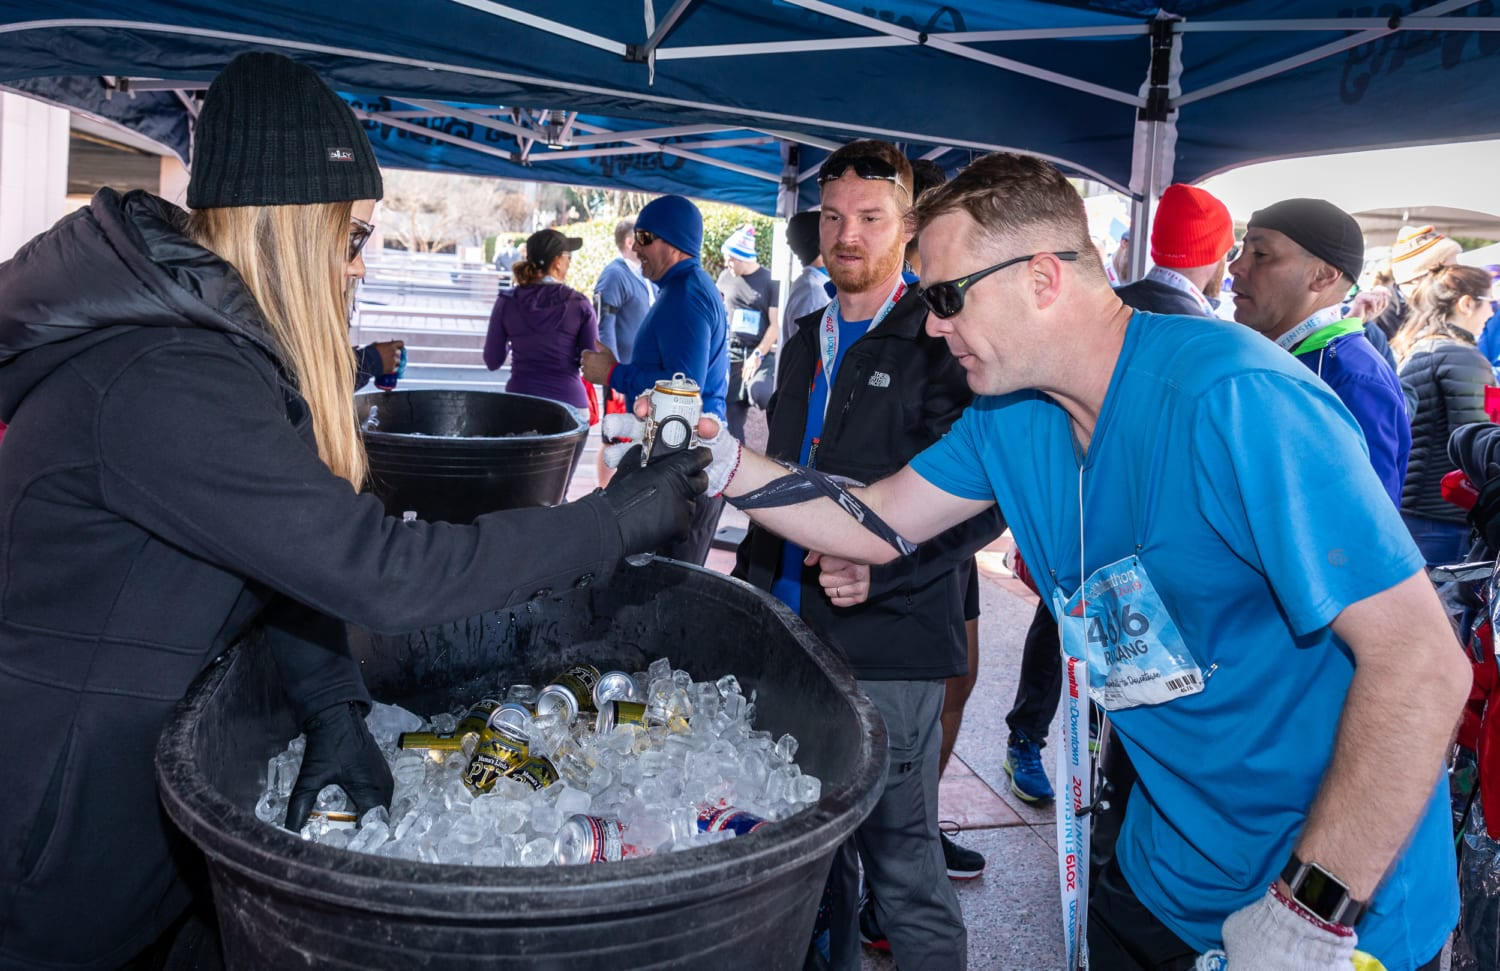 In 2018, runner gets a beer from Oskar Blues, the Official Beer Sponsor of the 3M Half Marathon.